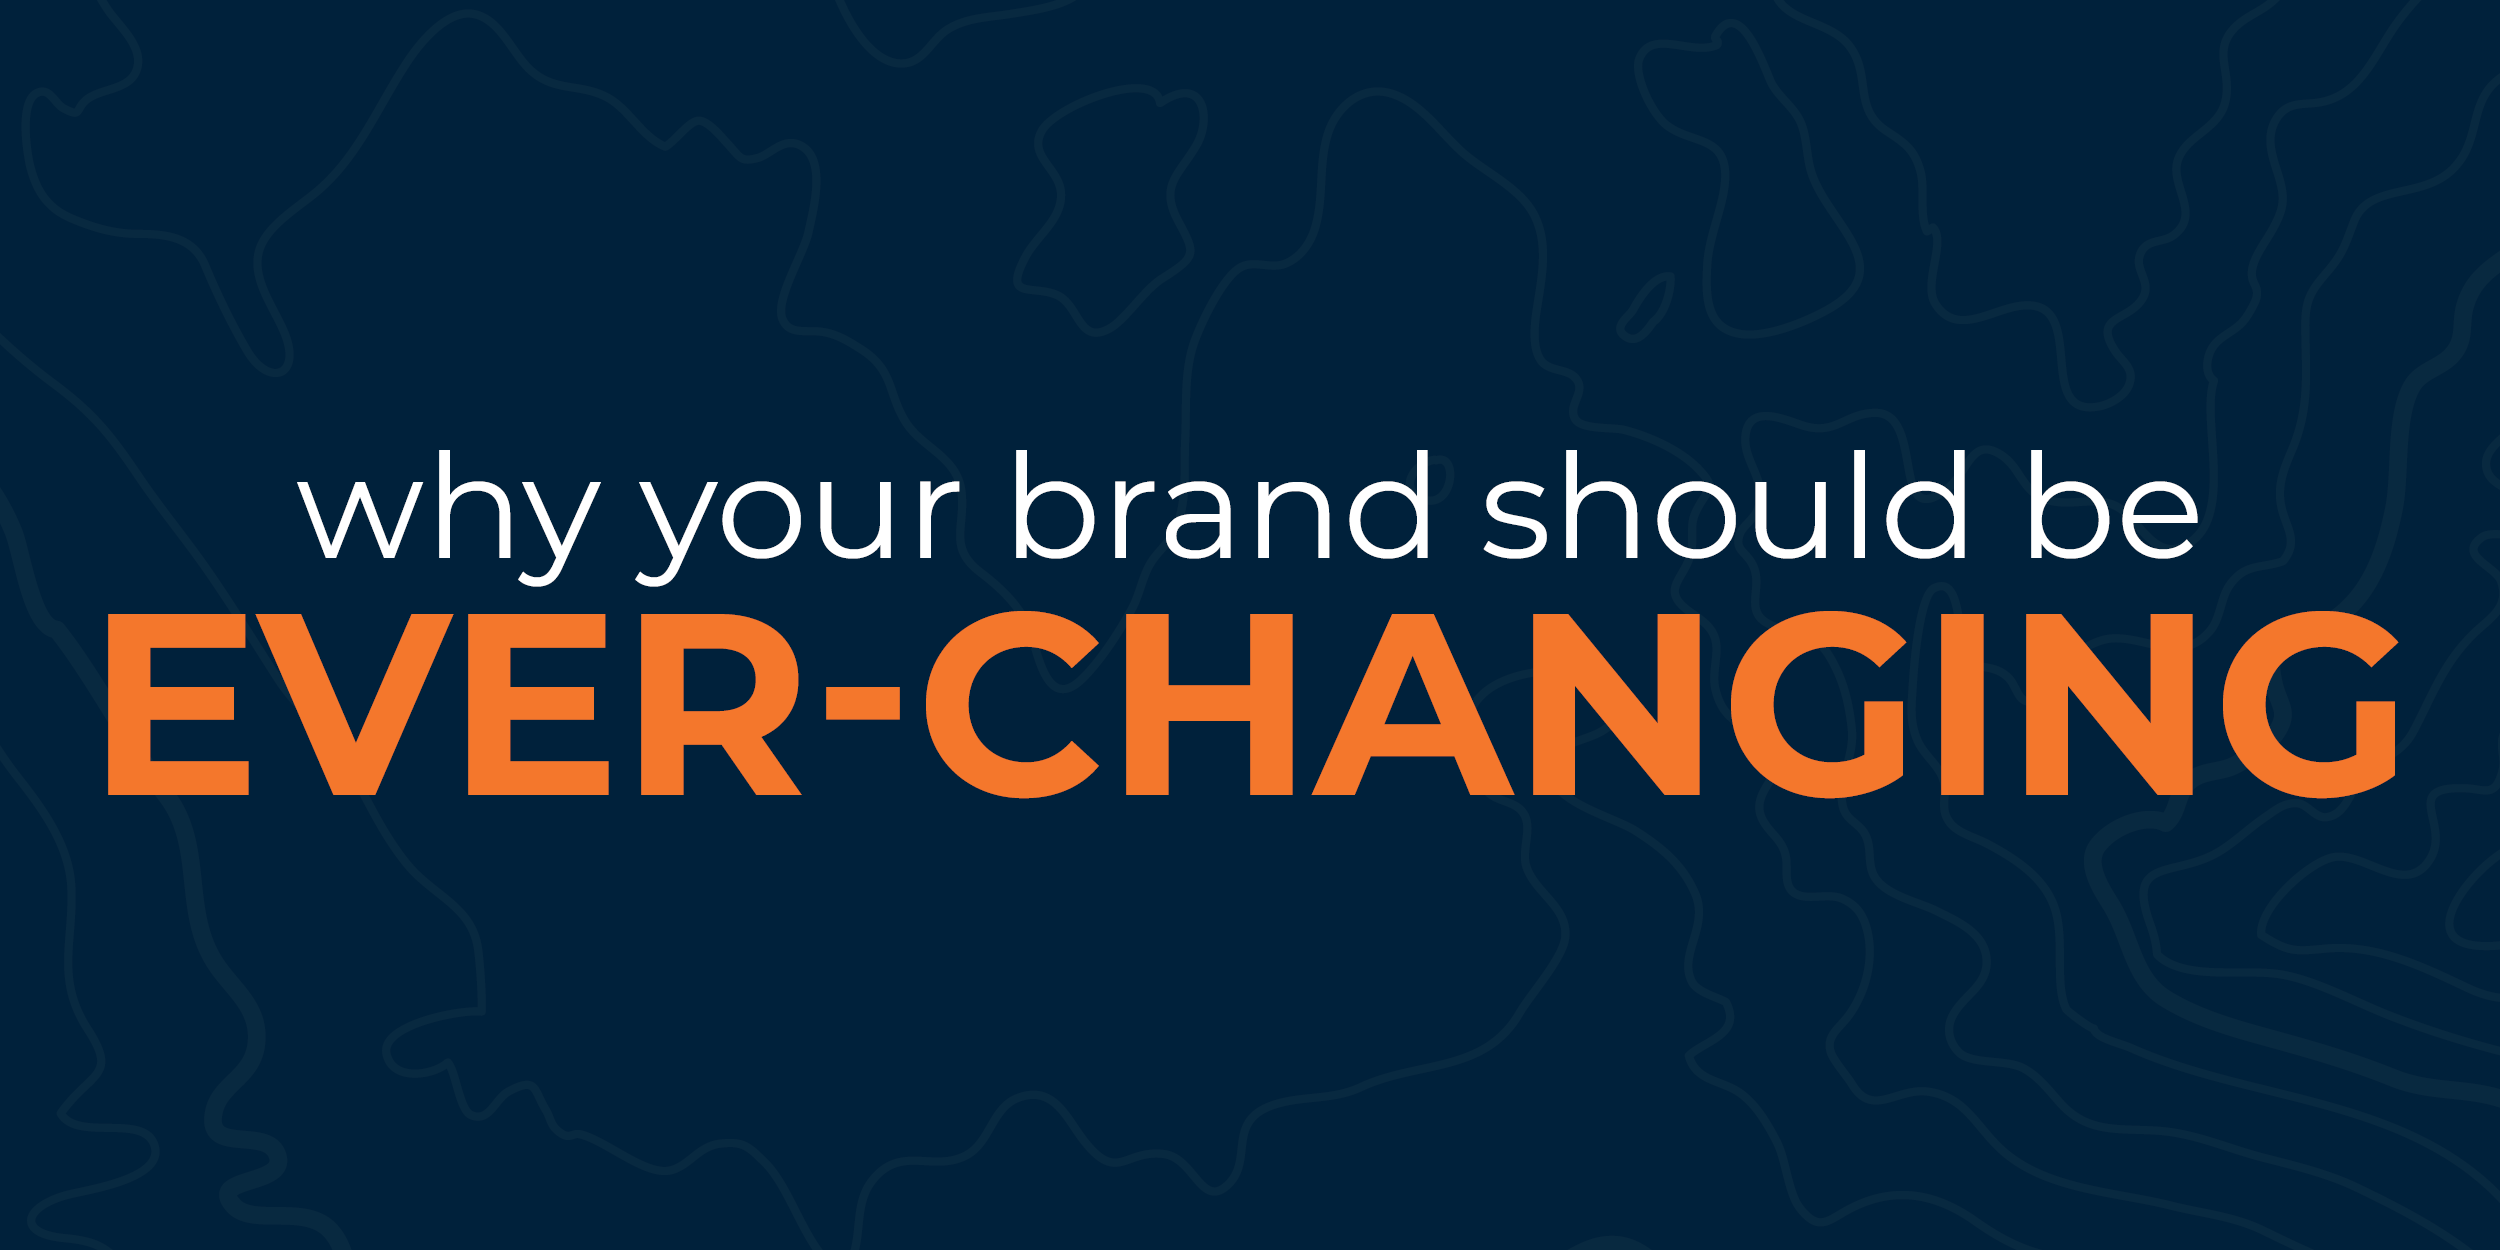 Why your brand should be ever-changing